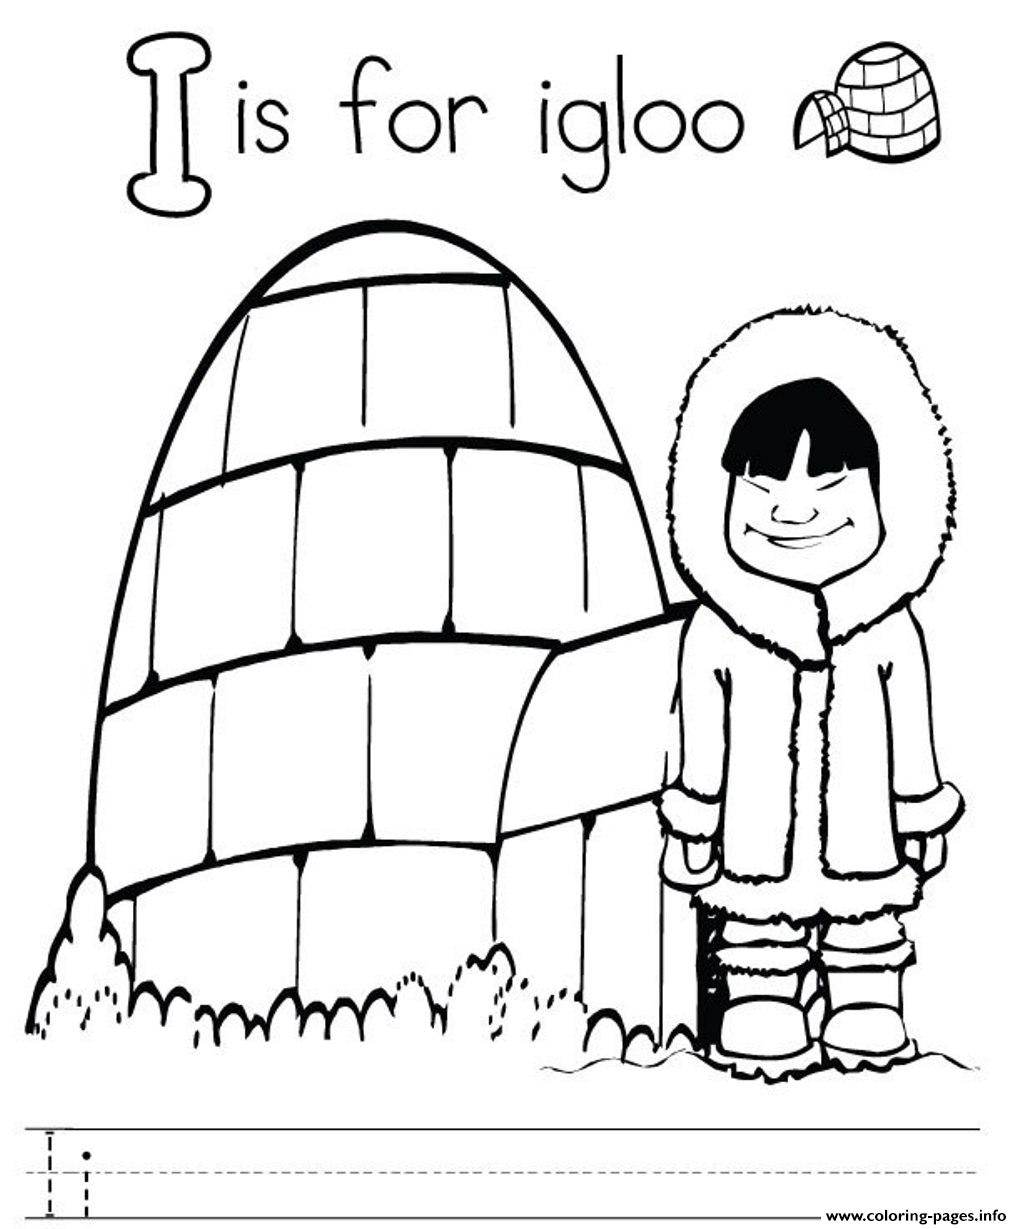 printable igloo coloring pages - photo#13